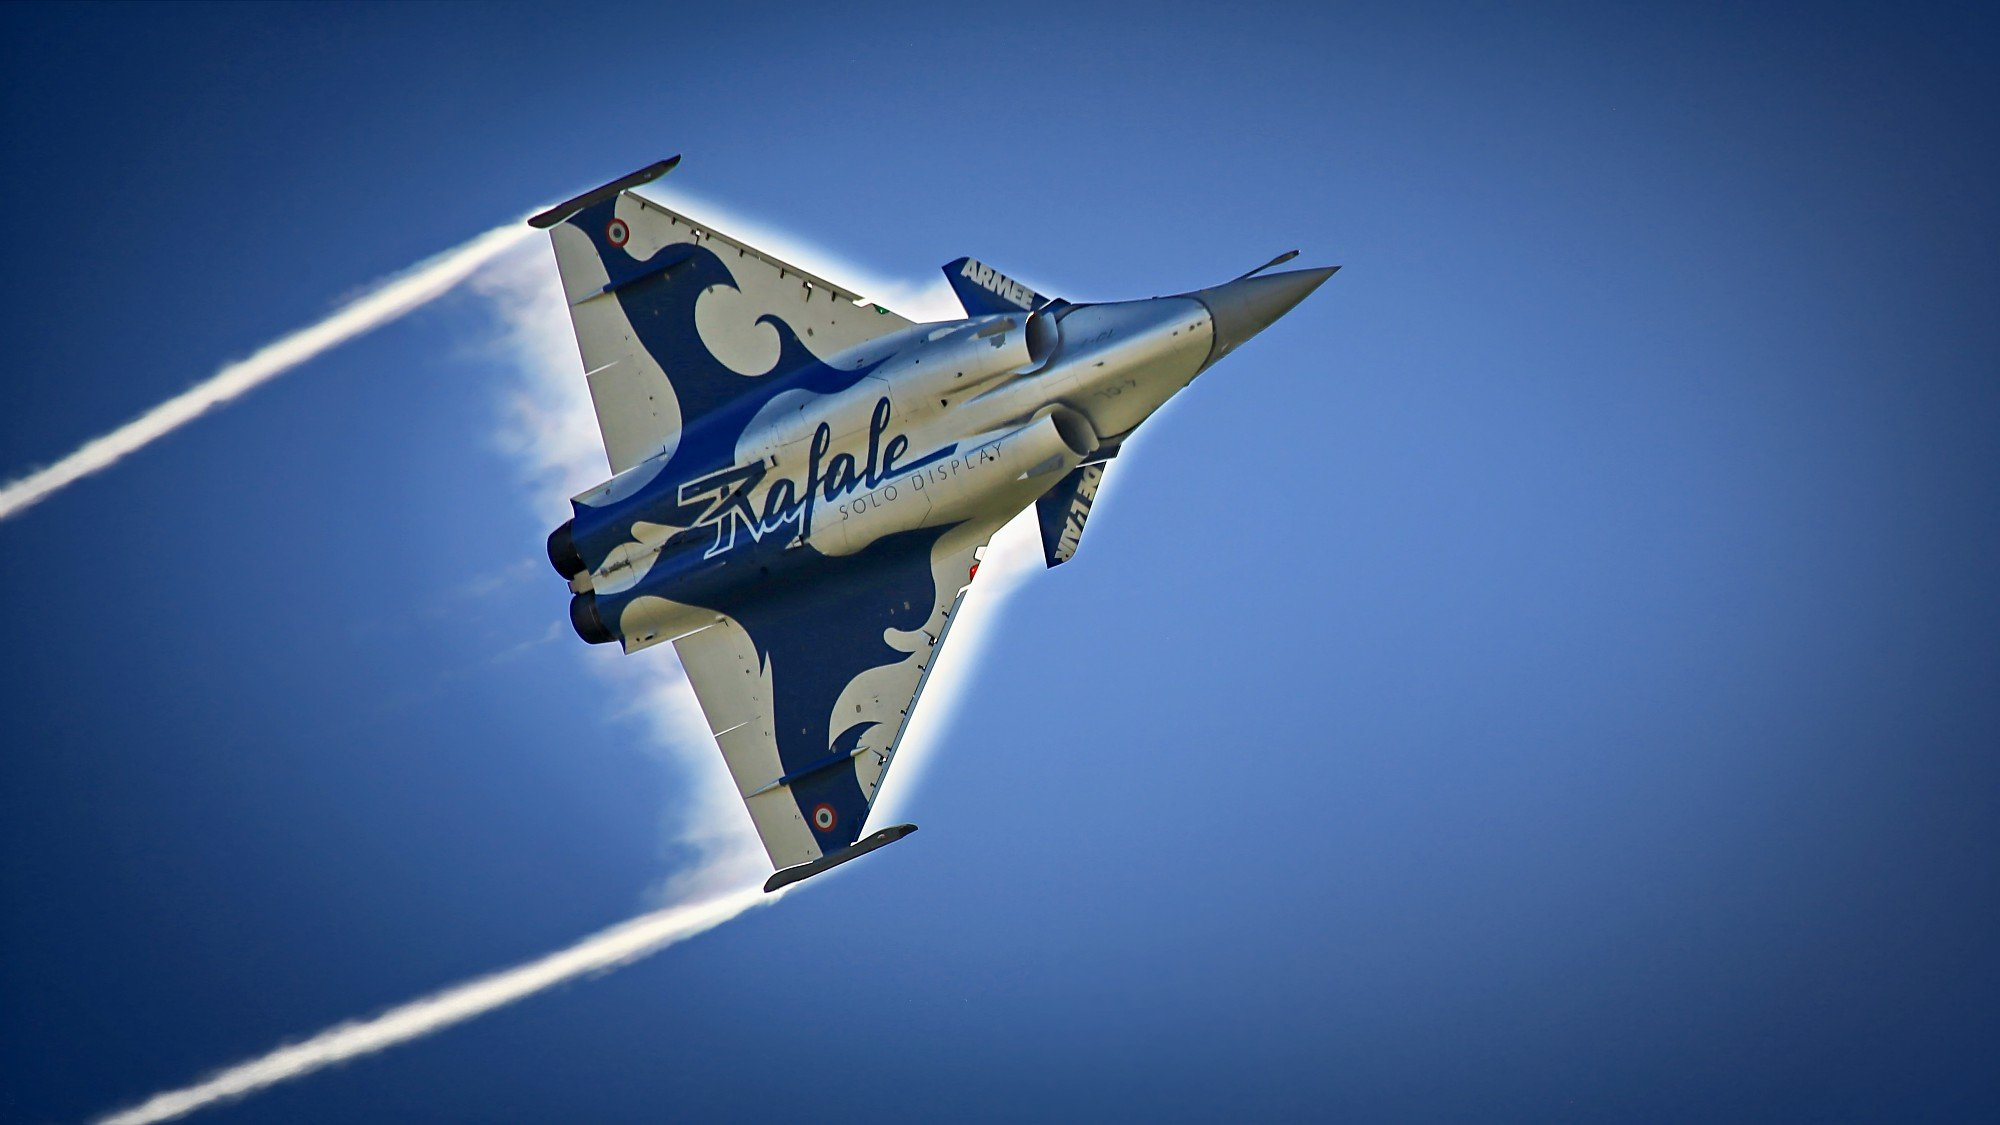 Dassault Aviation in tune with the Paris Air Show